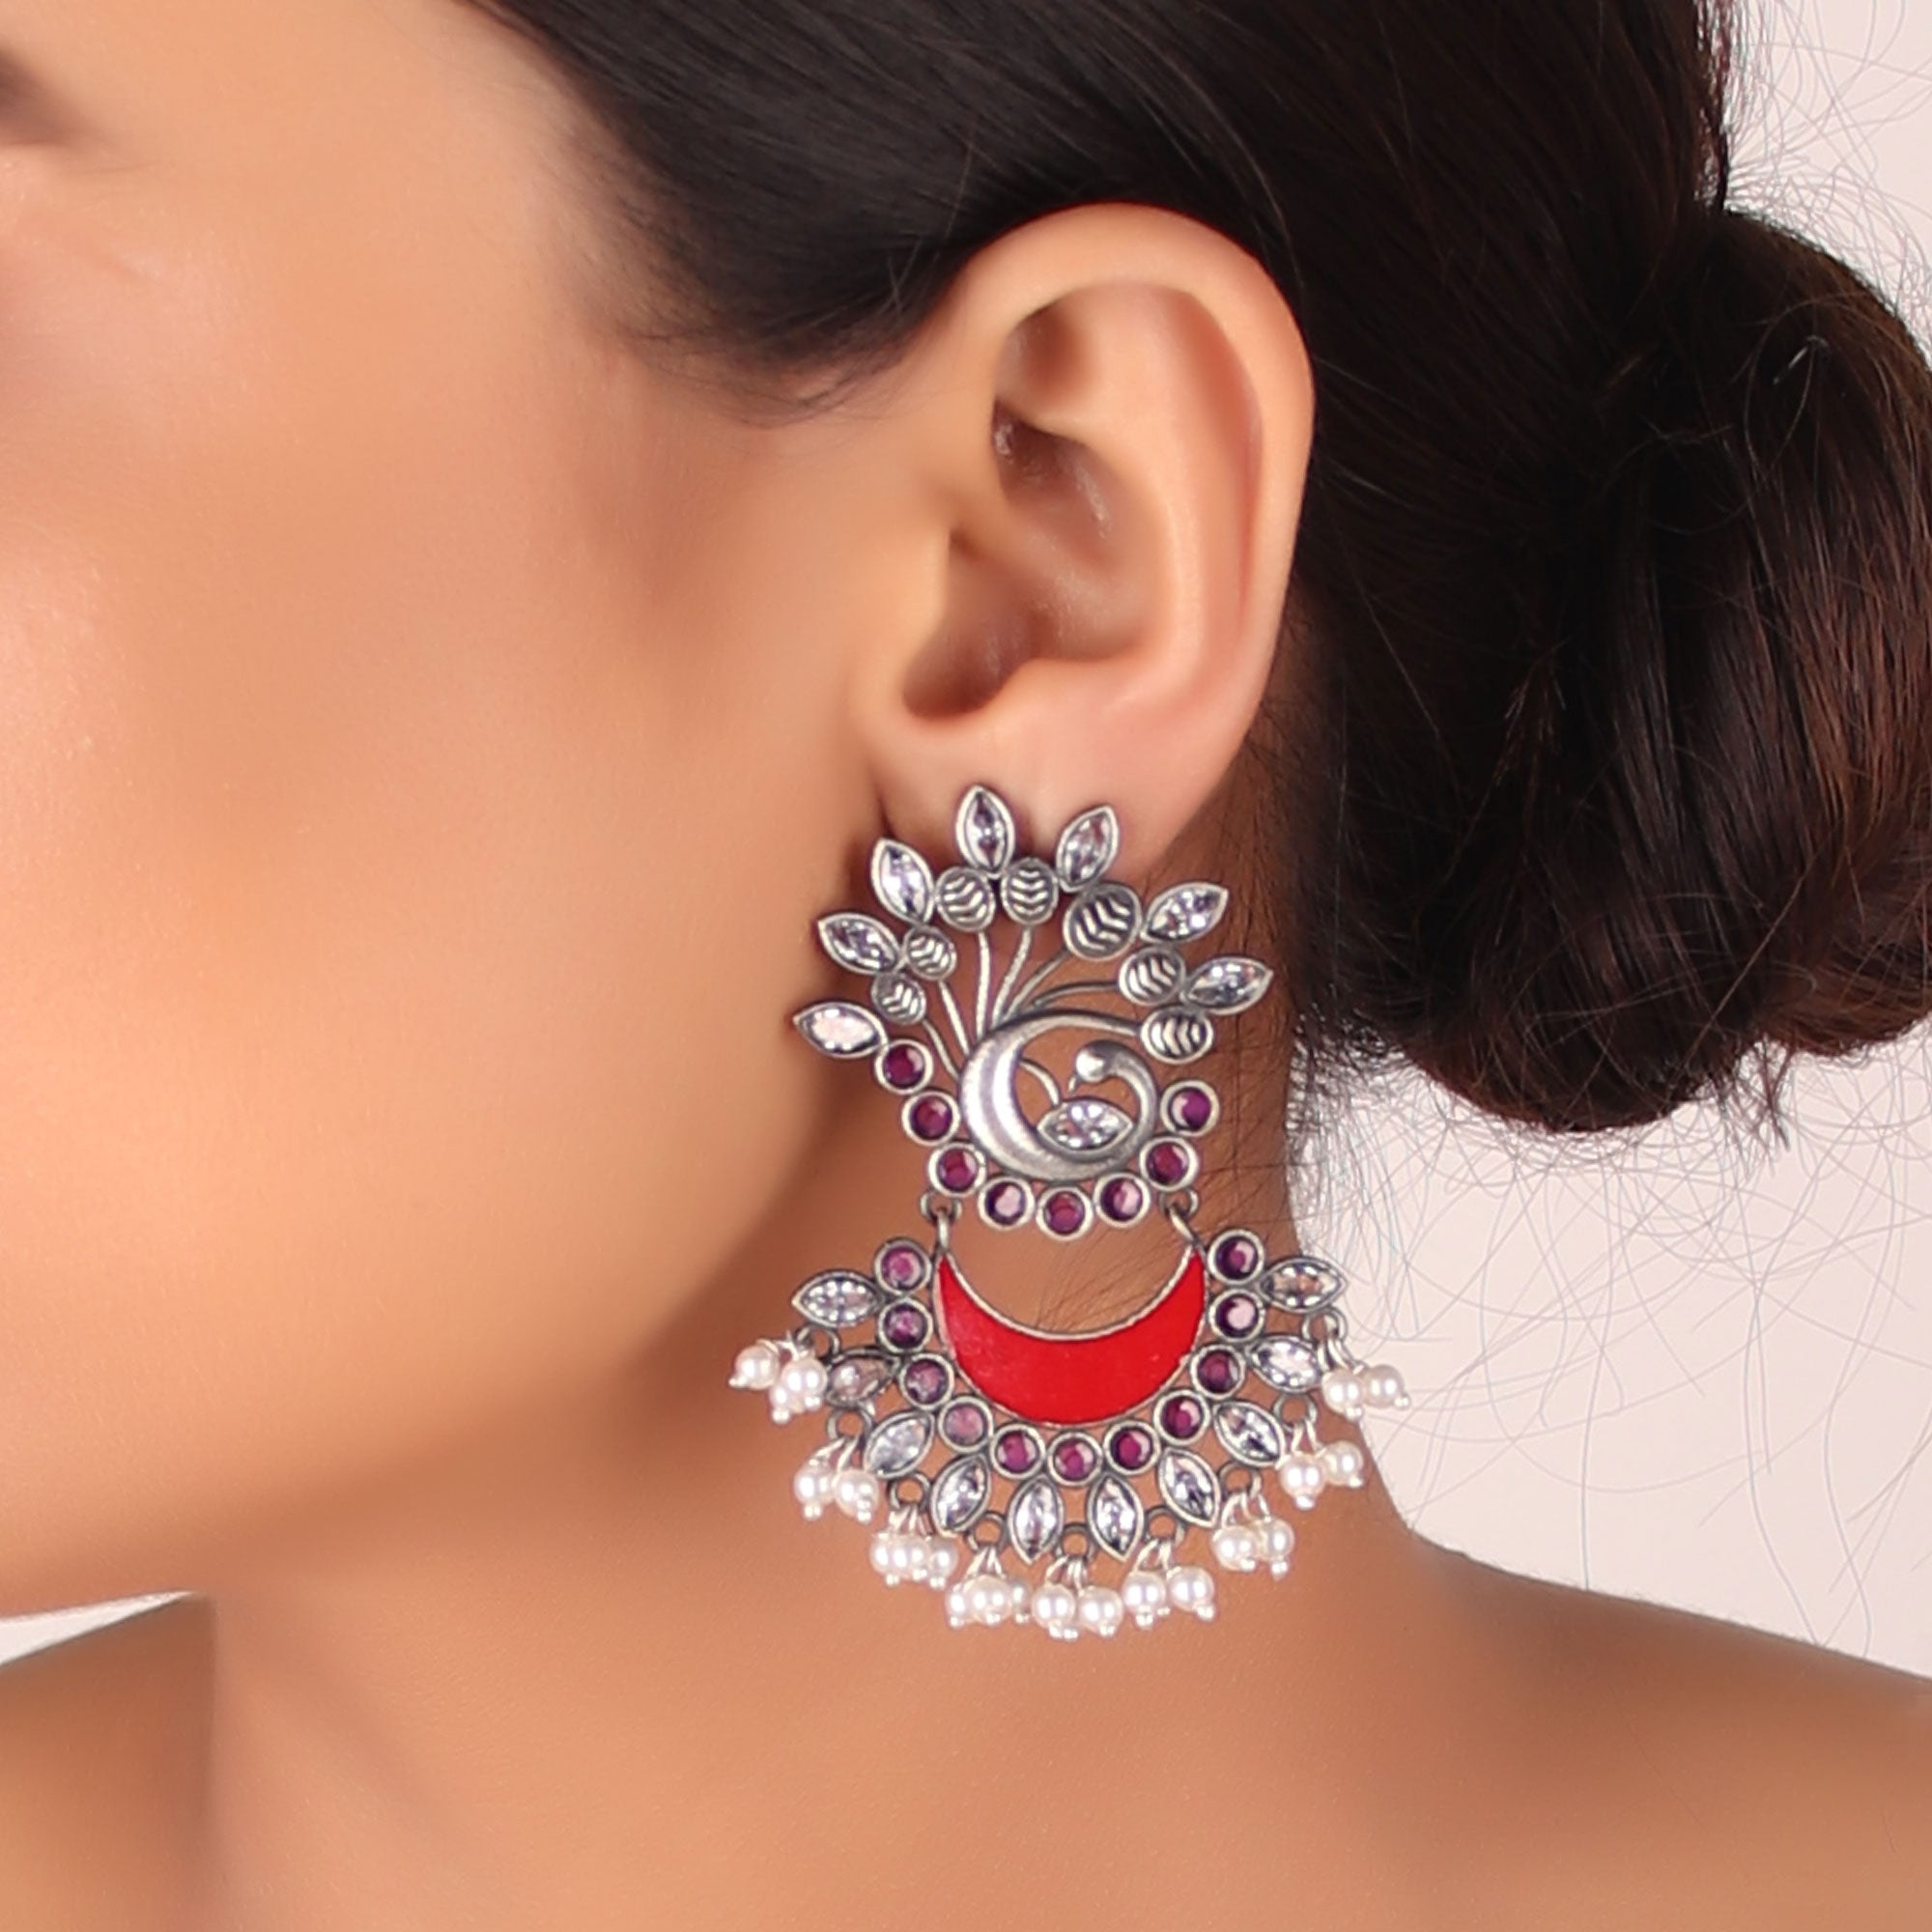 Earrings,The Nataraj Peacock Earring with Pinch of Red - Cippele Multi Store